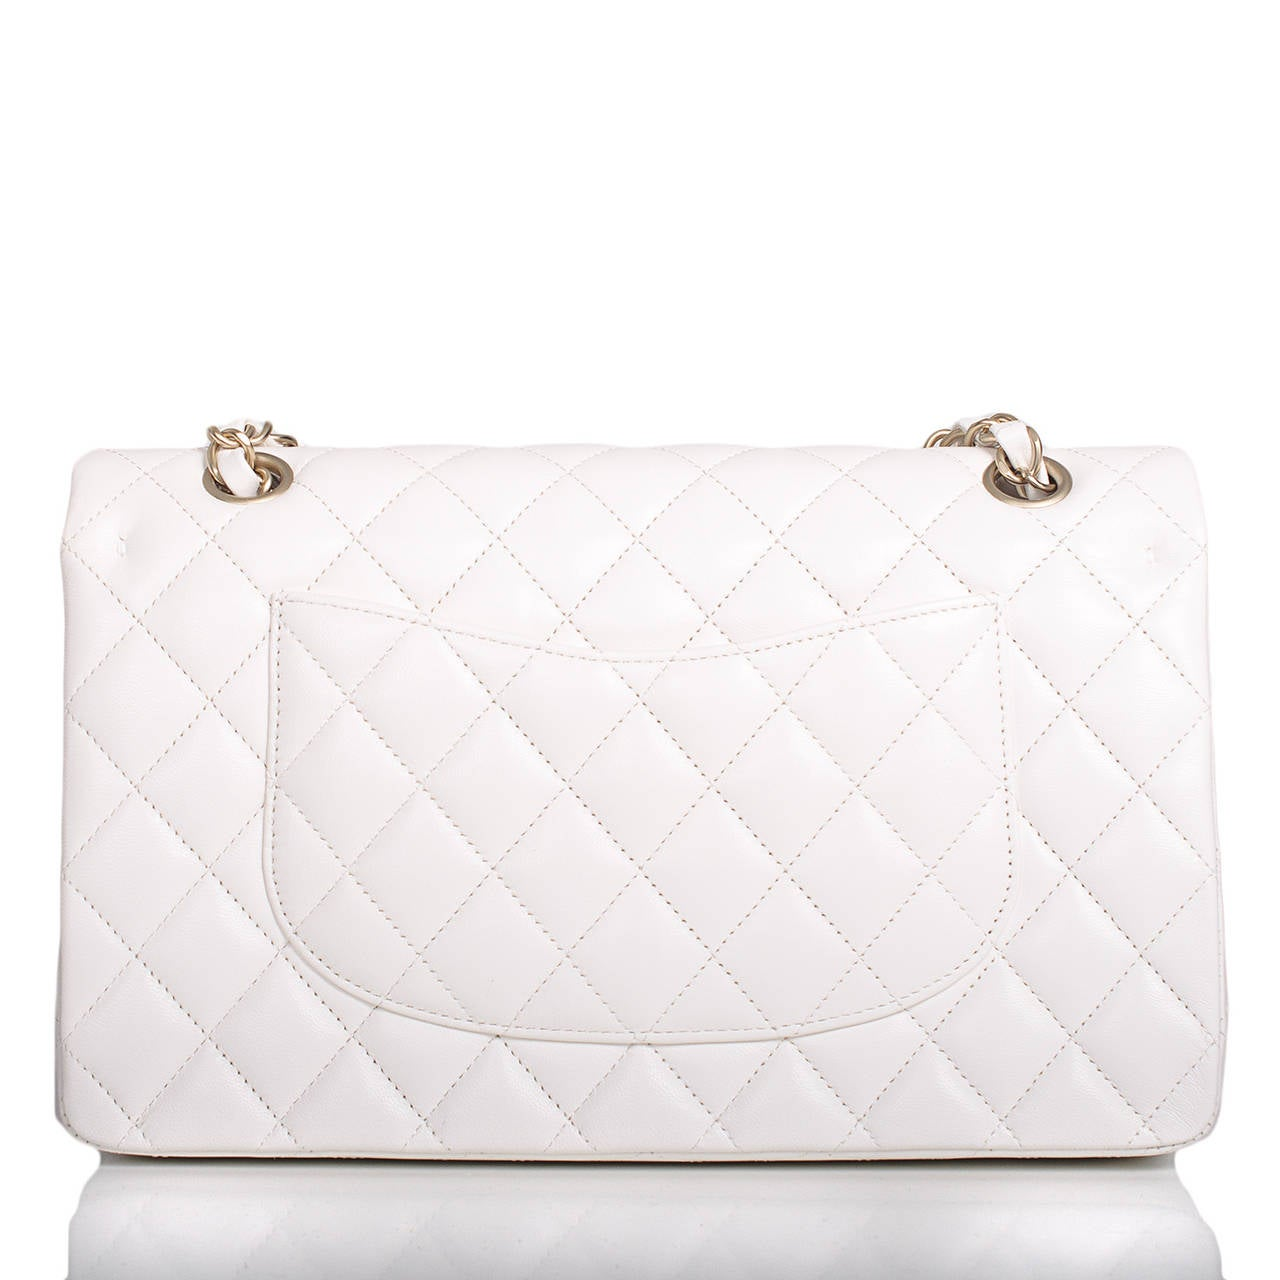 Chanel White Quilted Lambskin Large Classic Double Flap Bag Gold Hardware In New never worn Condition For Sale In New York, NY